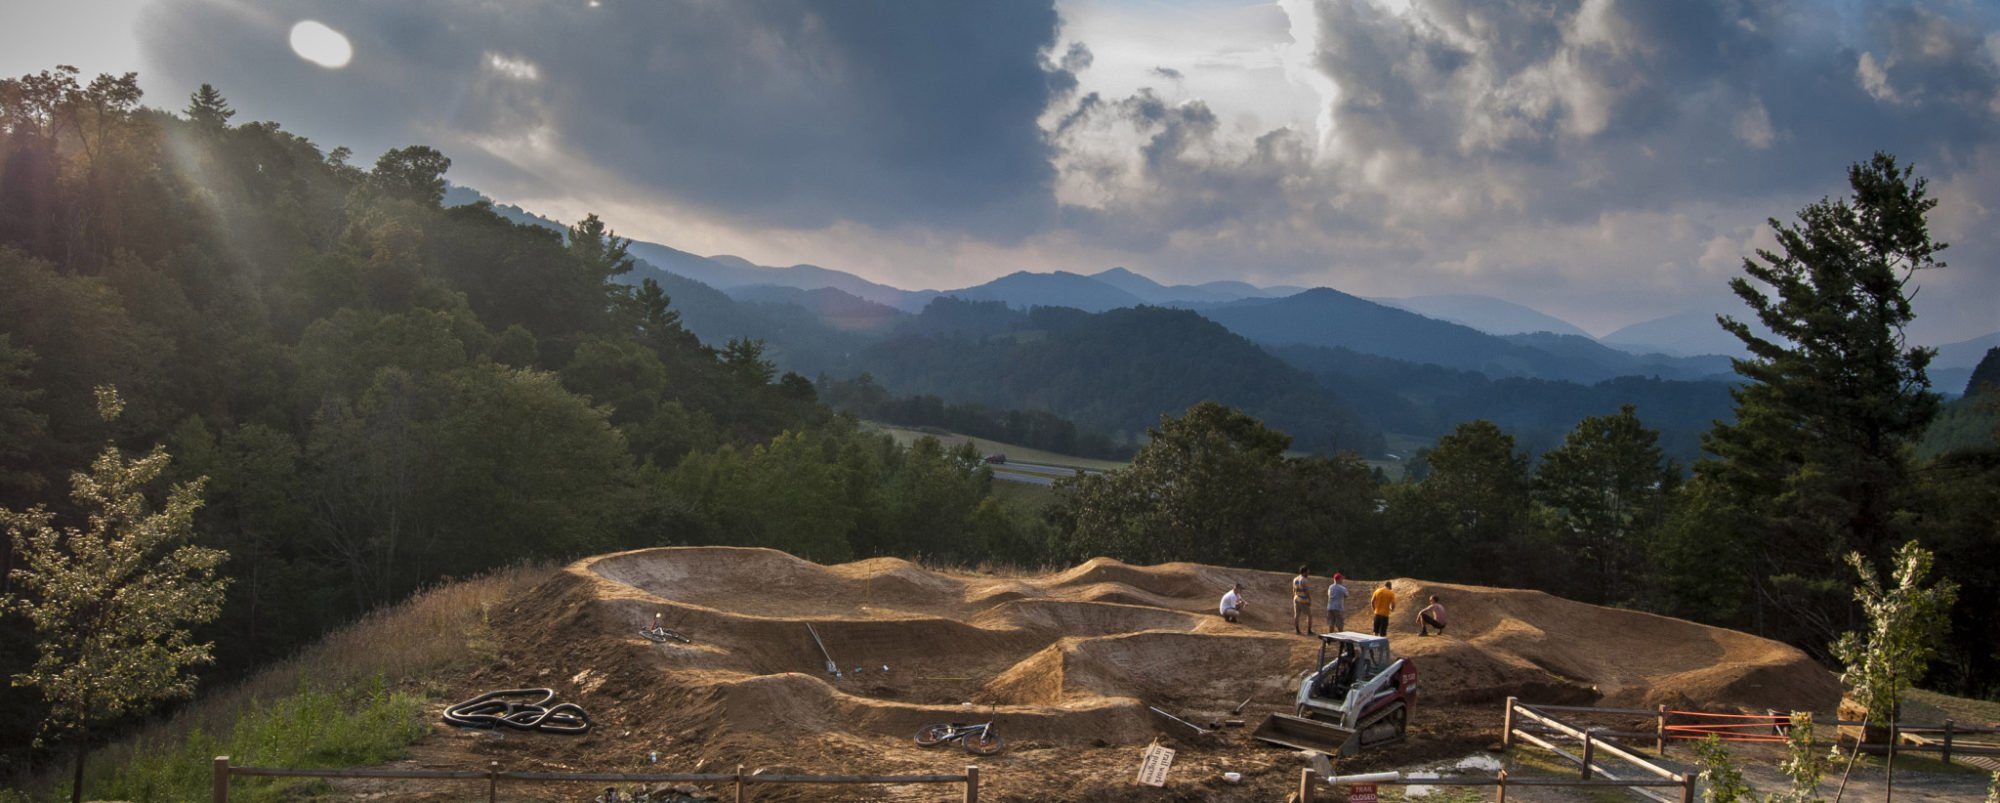 Rocky Knob Mountain Bike Park